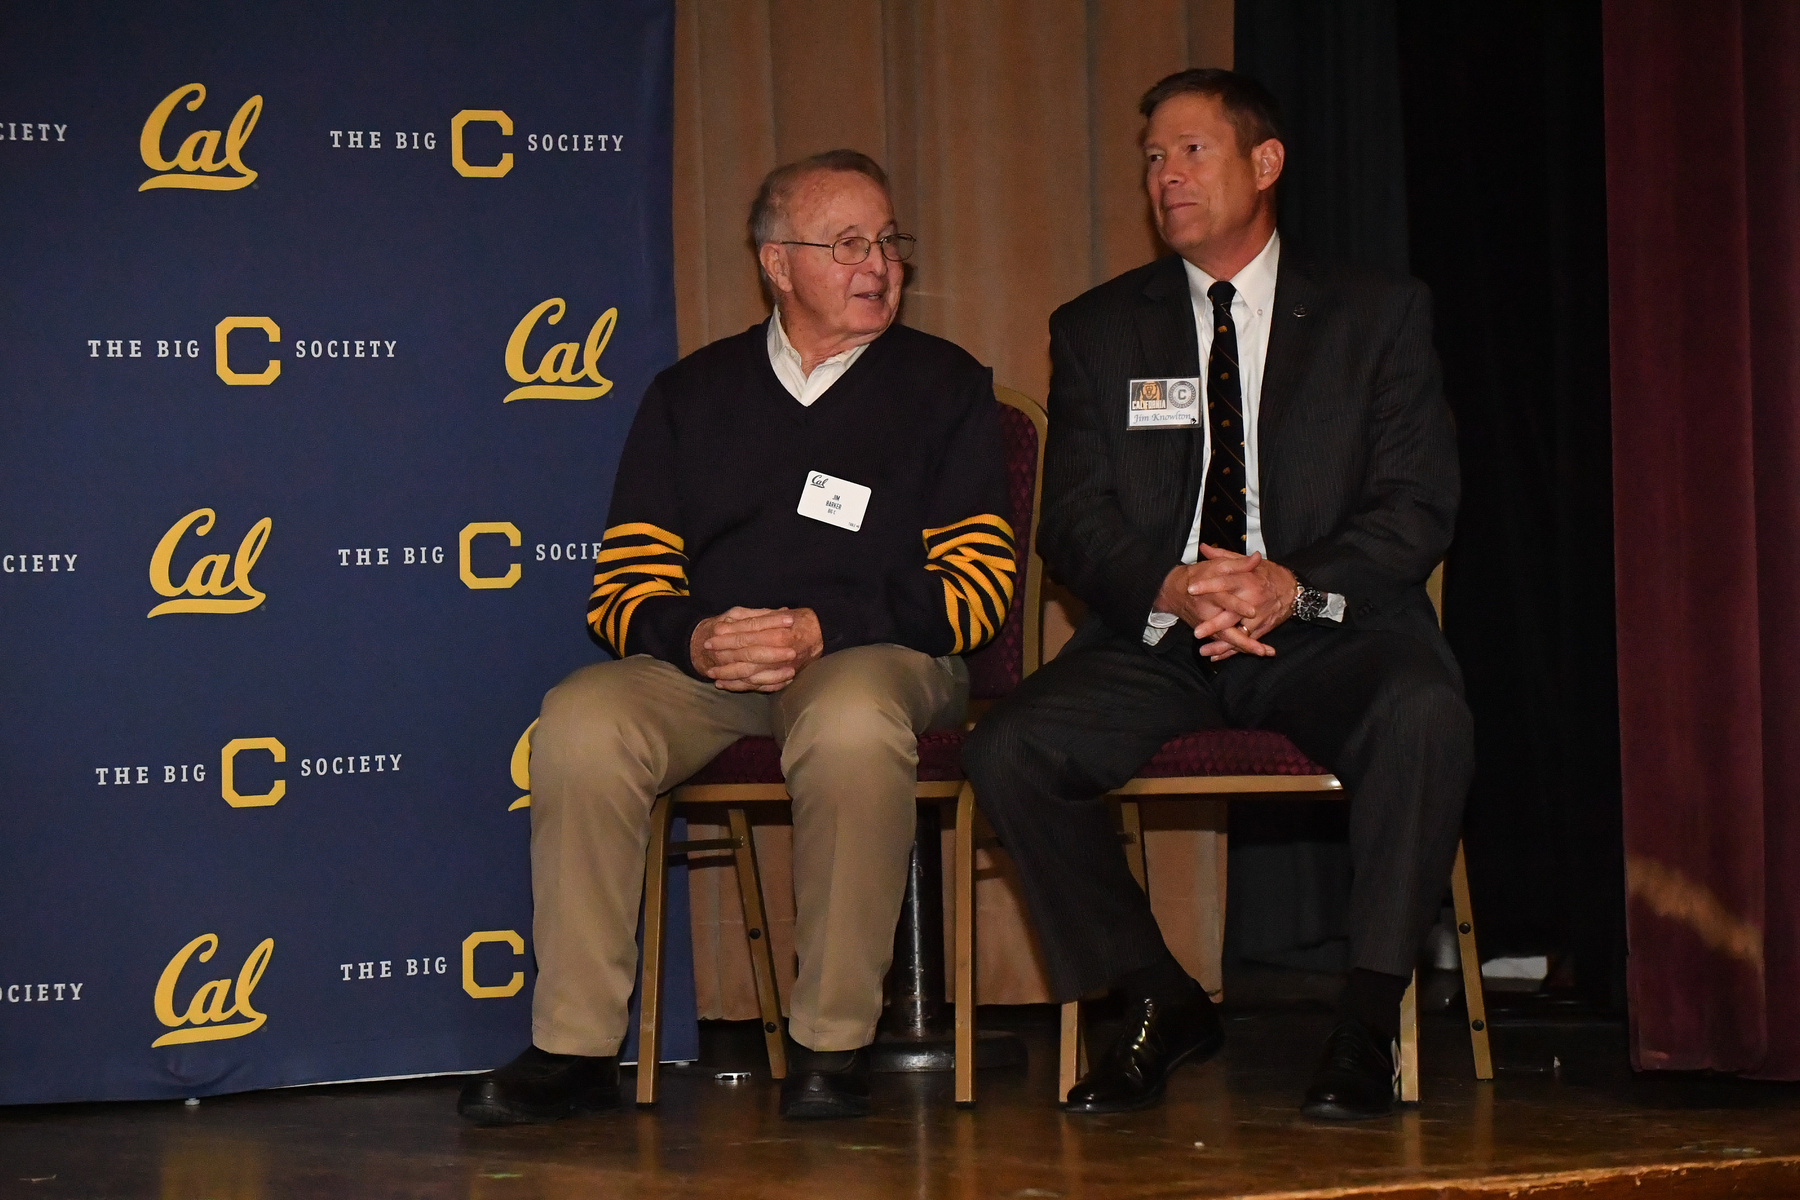 2018 Cal Hall of Fame ceremony _20181026_200631_MarcusE-(ZF-0861-35620-1-104).jpg